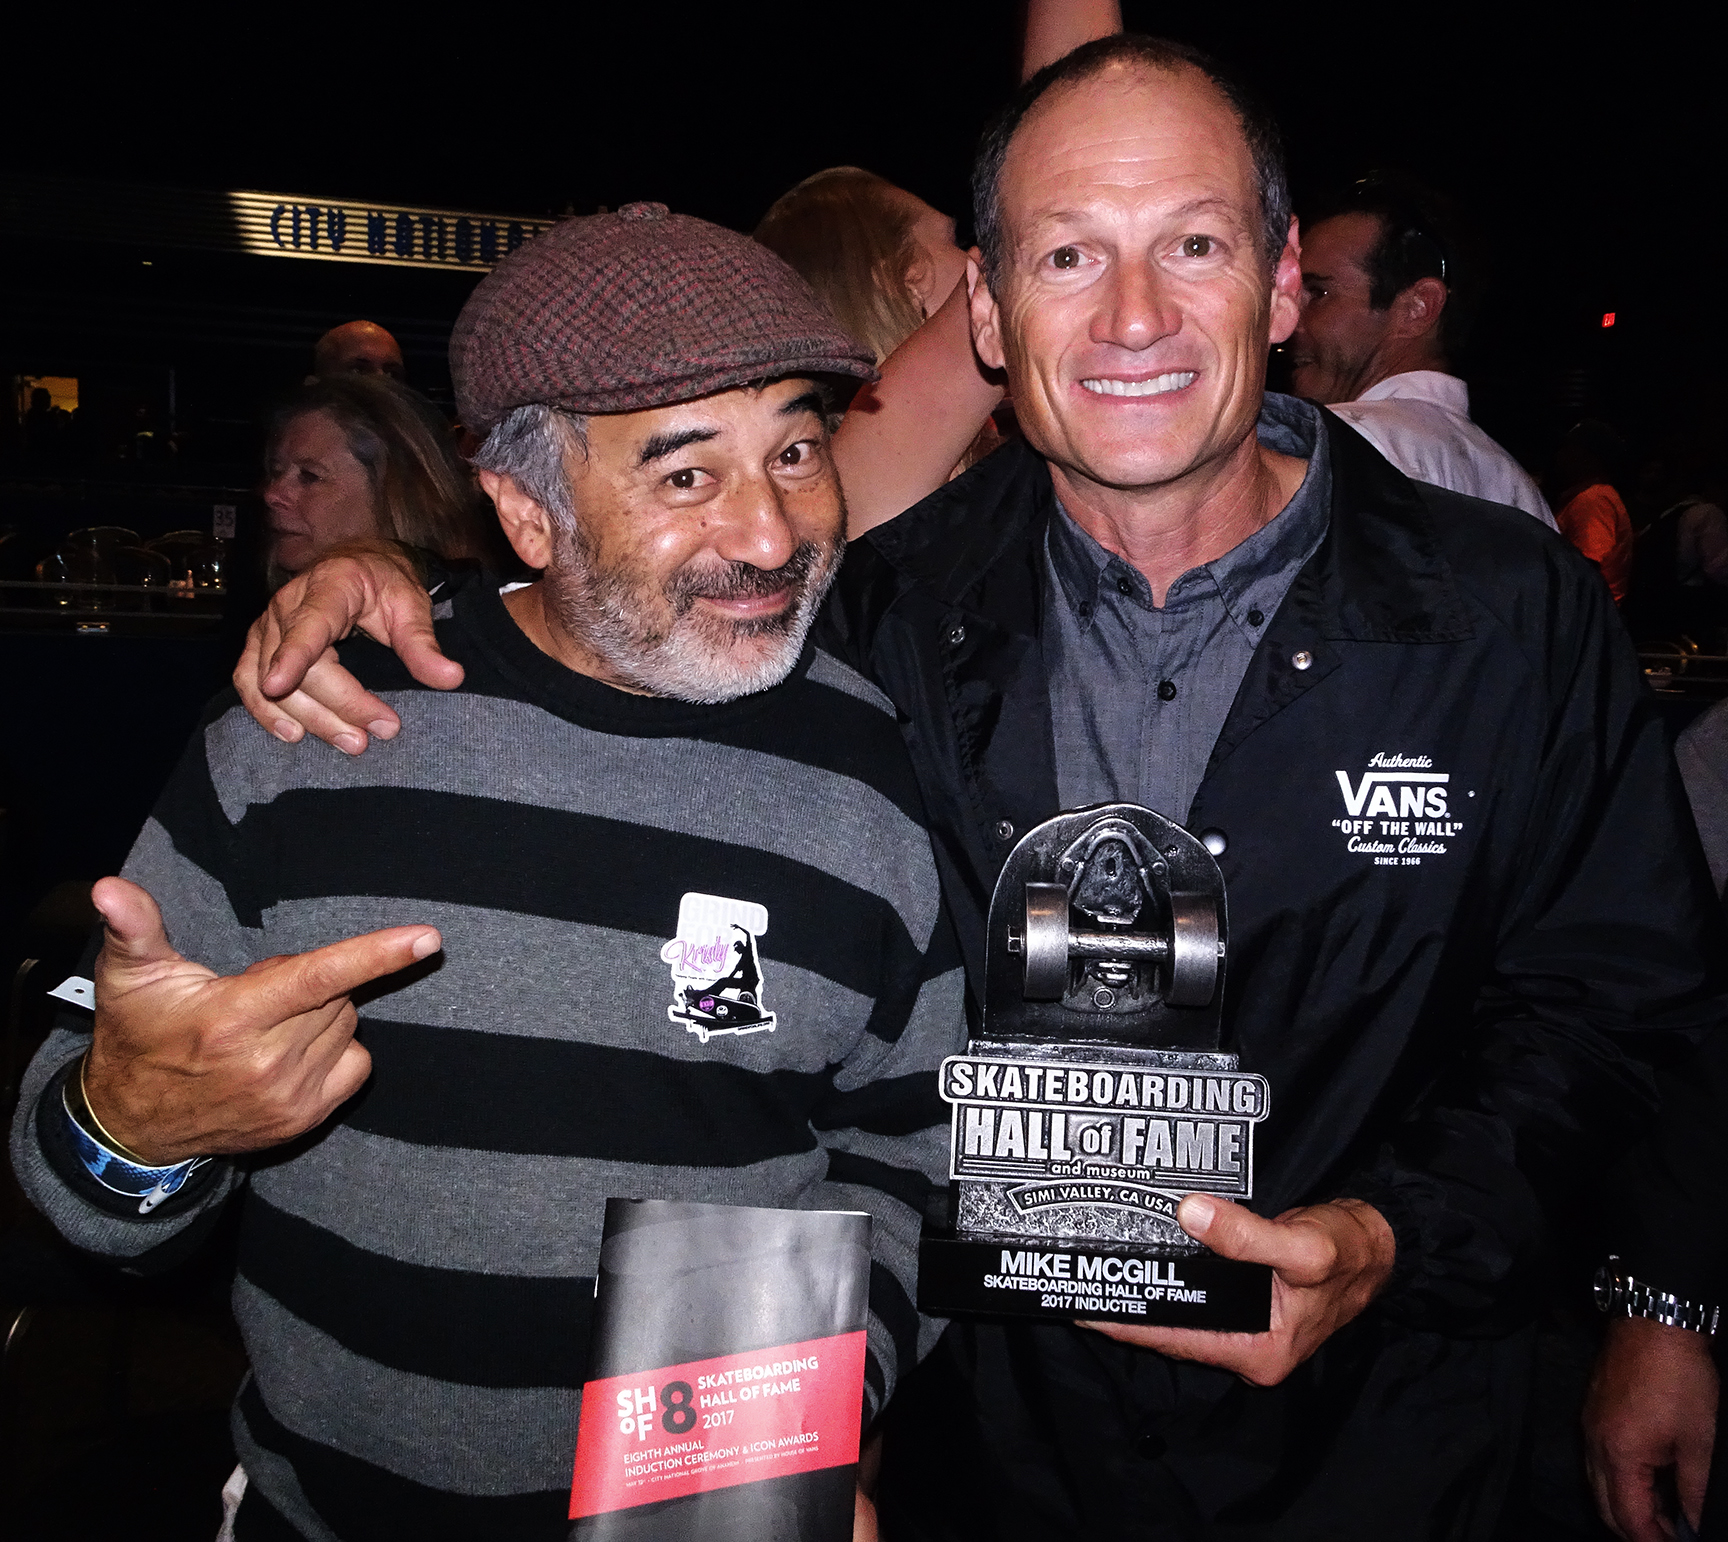 McGill (R ), with longtime friend and teammate Steve Caballero, after being inducted into the skateboarding Hall of Fame. PHOTO: BRITTAIN